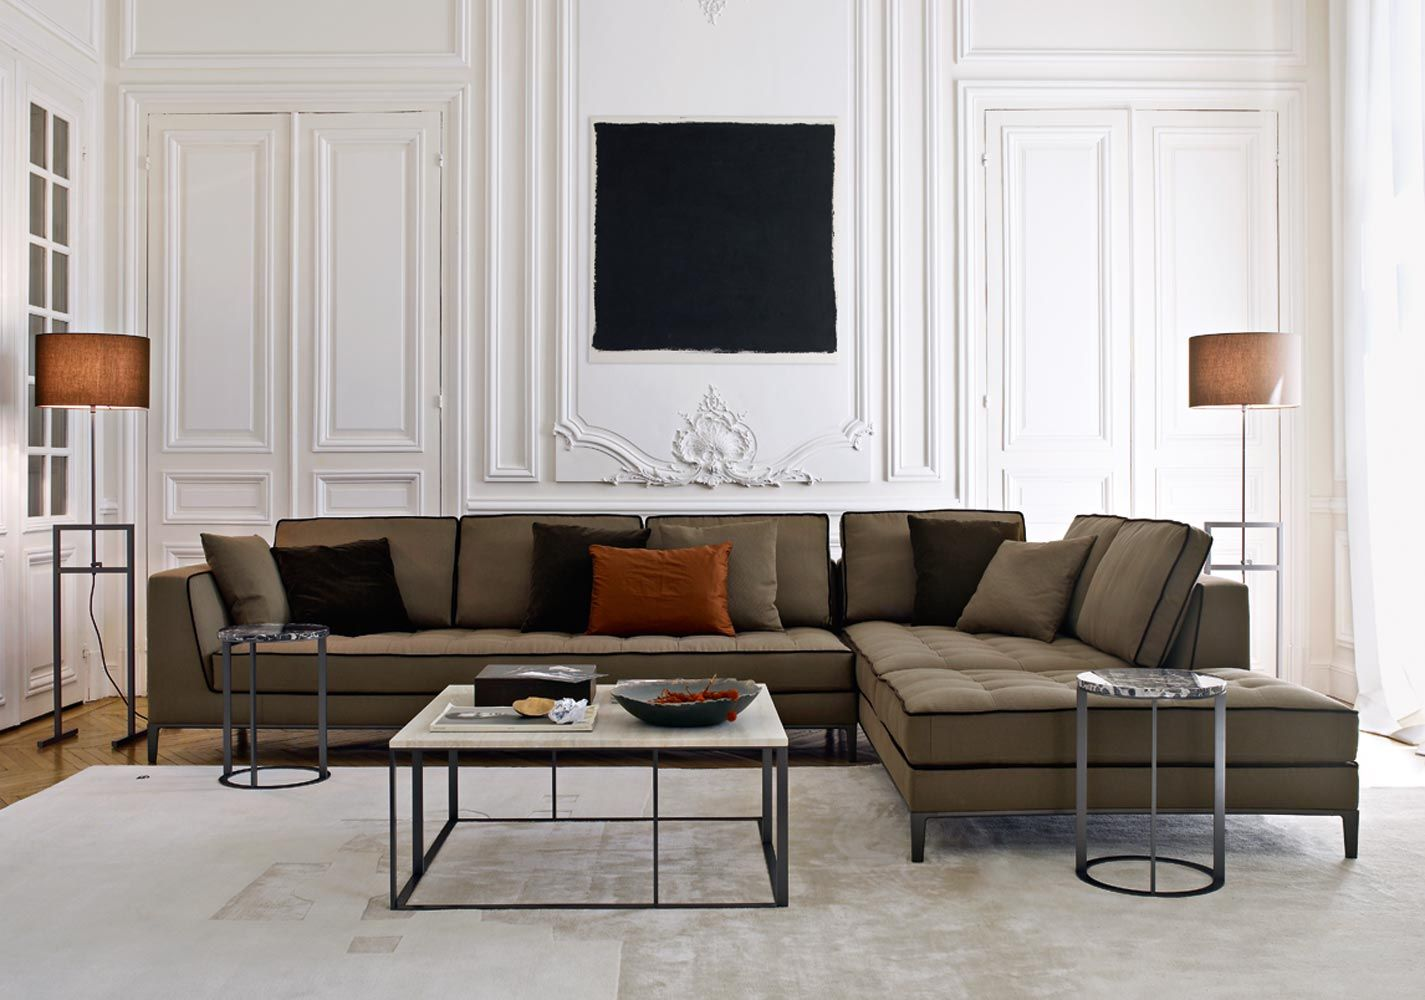 sofas: lucrezia – collection: maxalto – design: antonio citterio